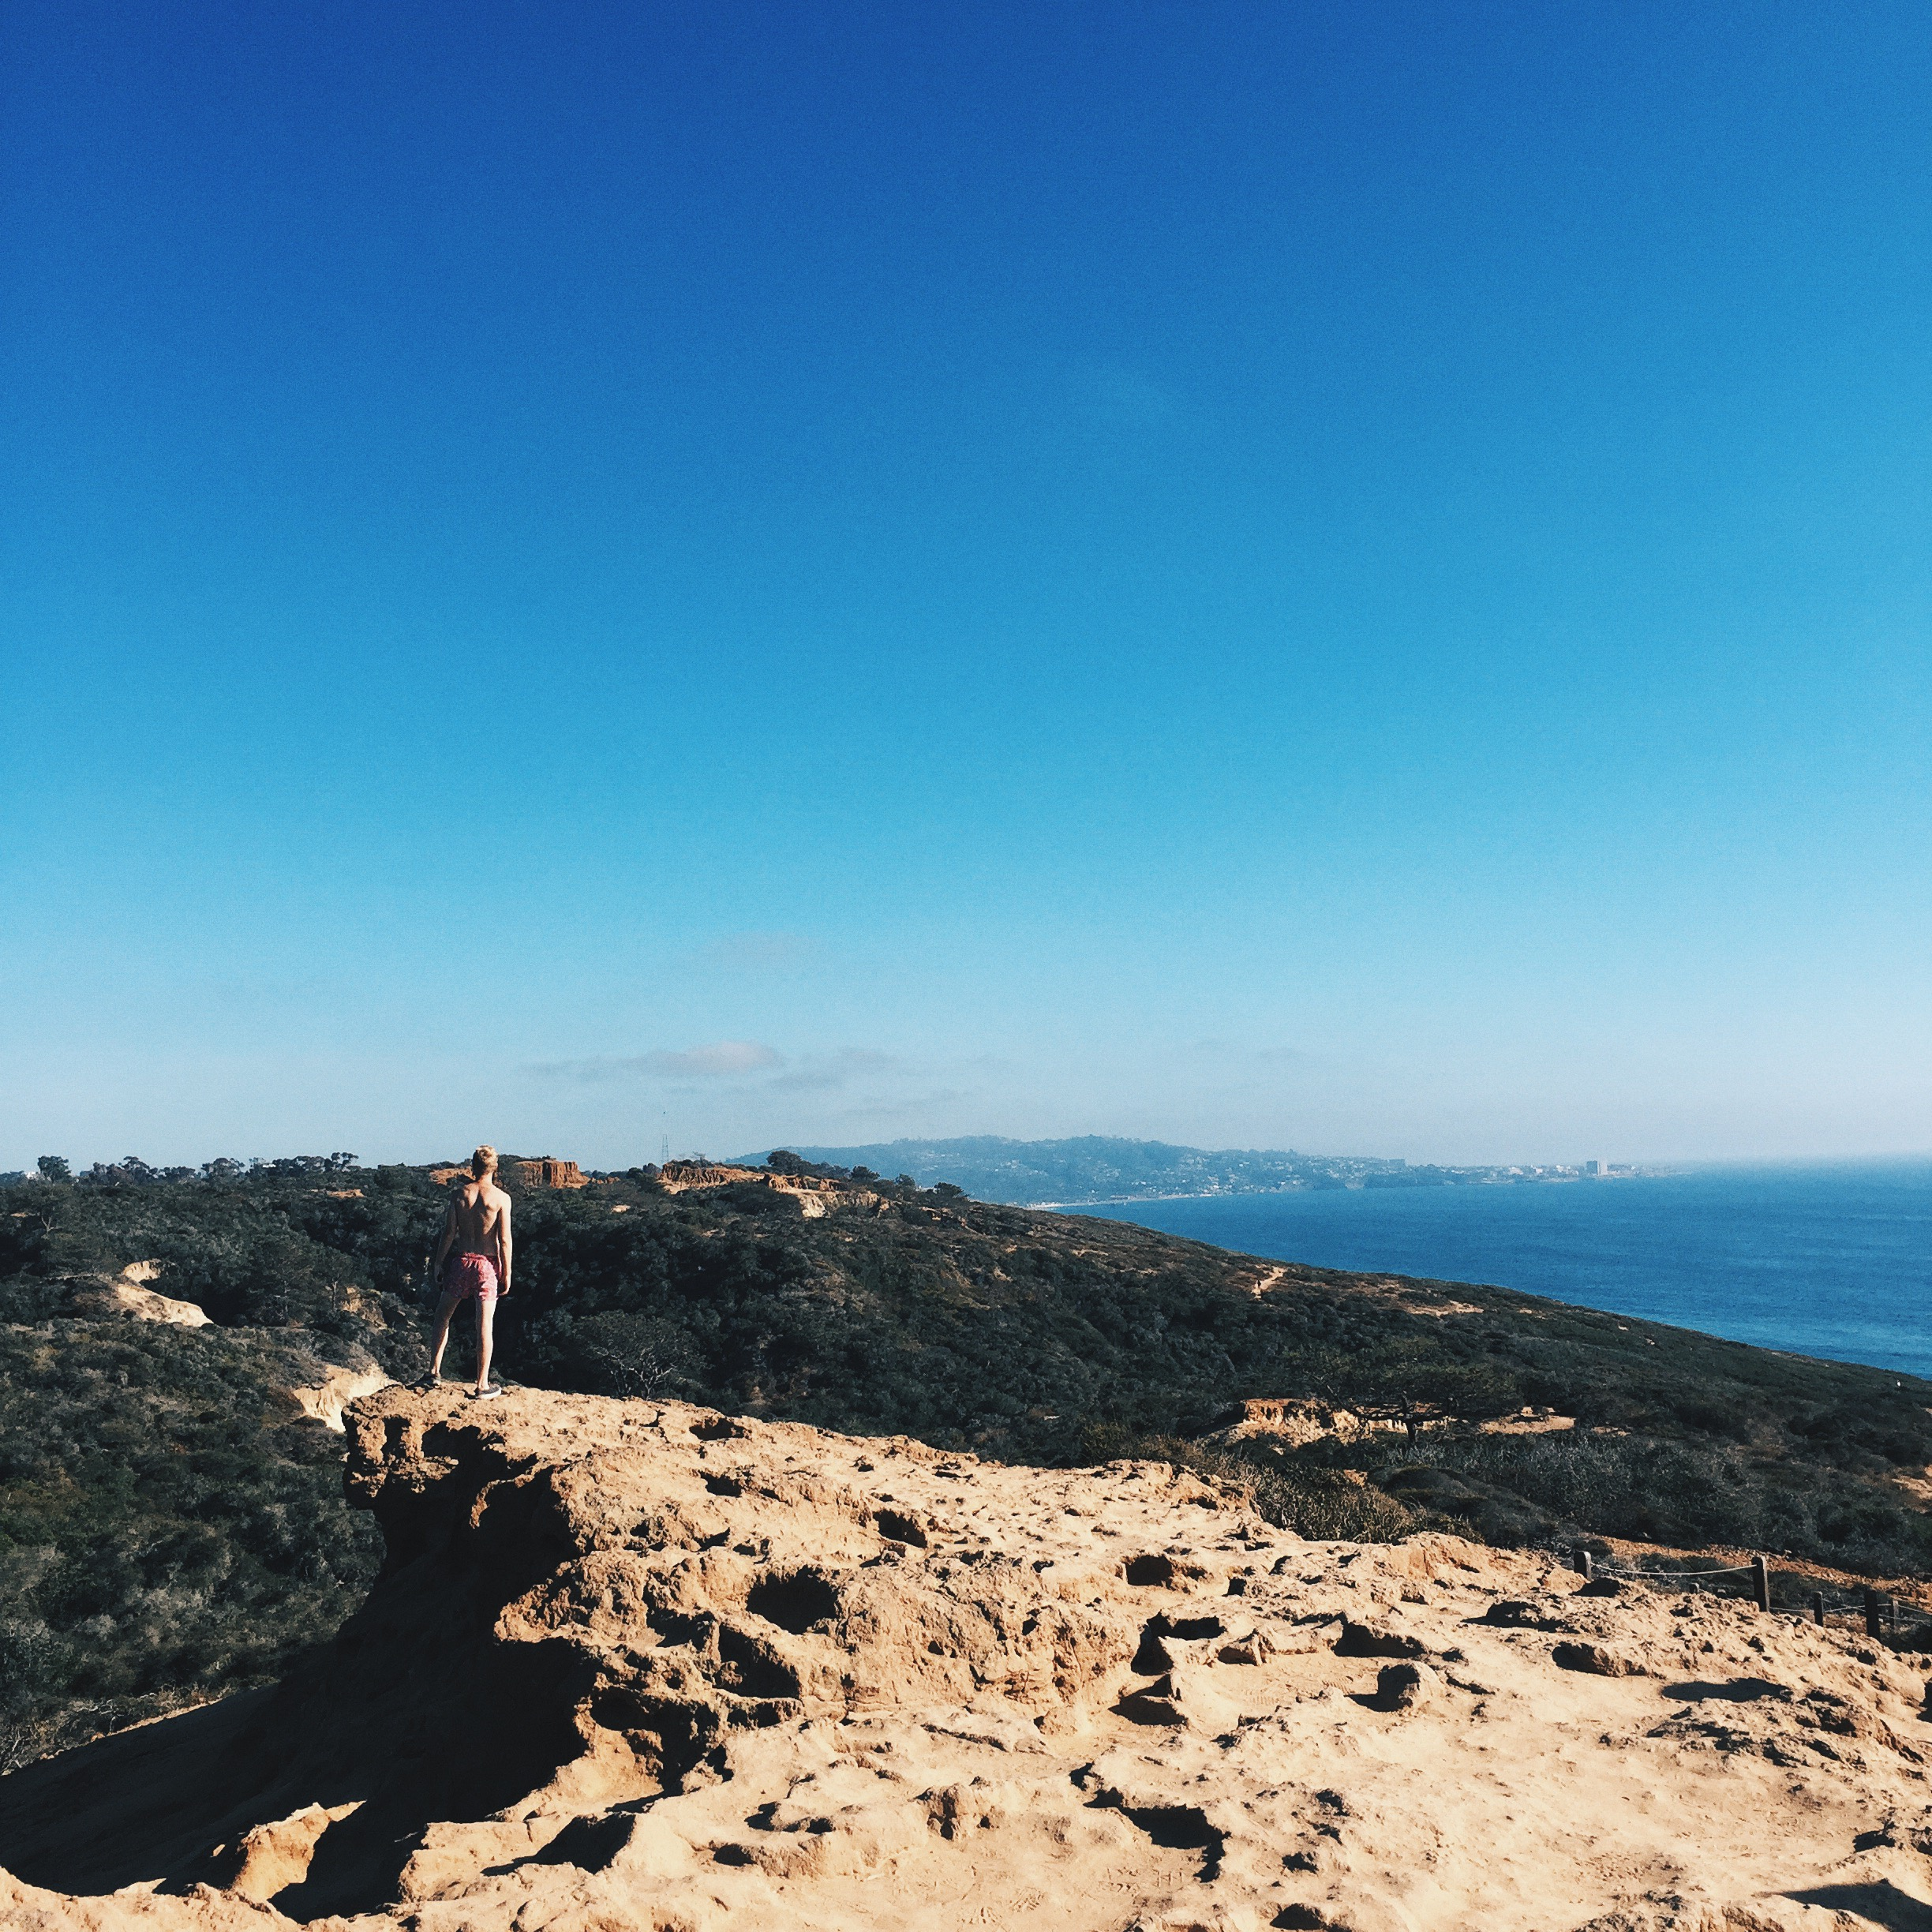 Then we went on the incredible Torrey Pines Trail hike. This trail has you weaving up and down cliffs, eventually leading you back down to the beach. It is now one of my all time favorite hikes.